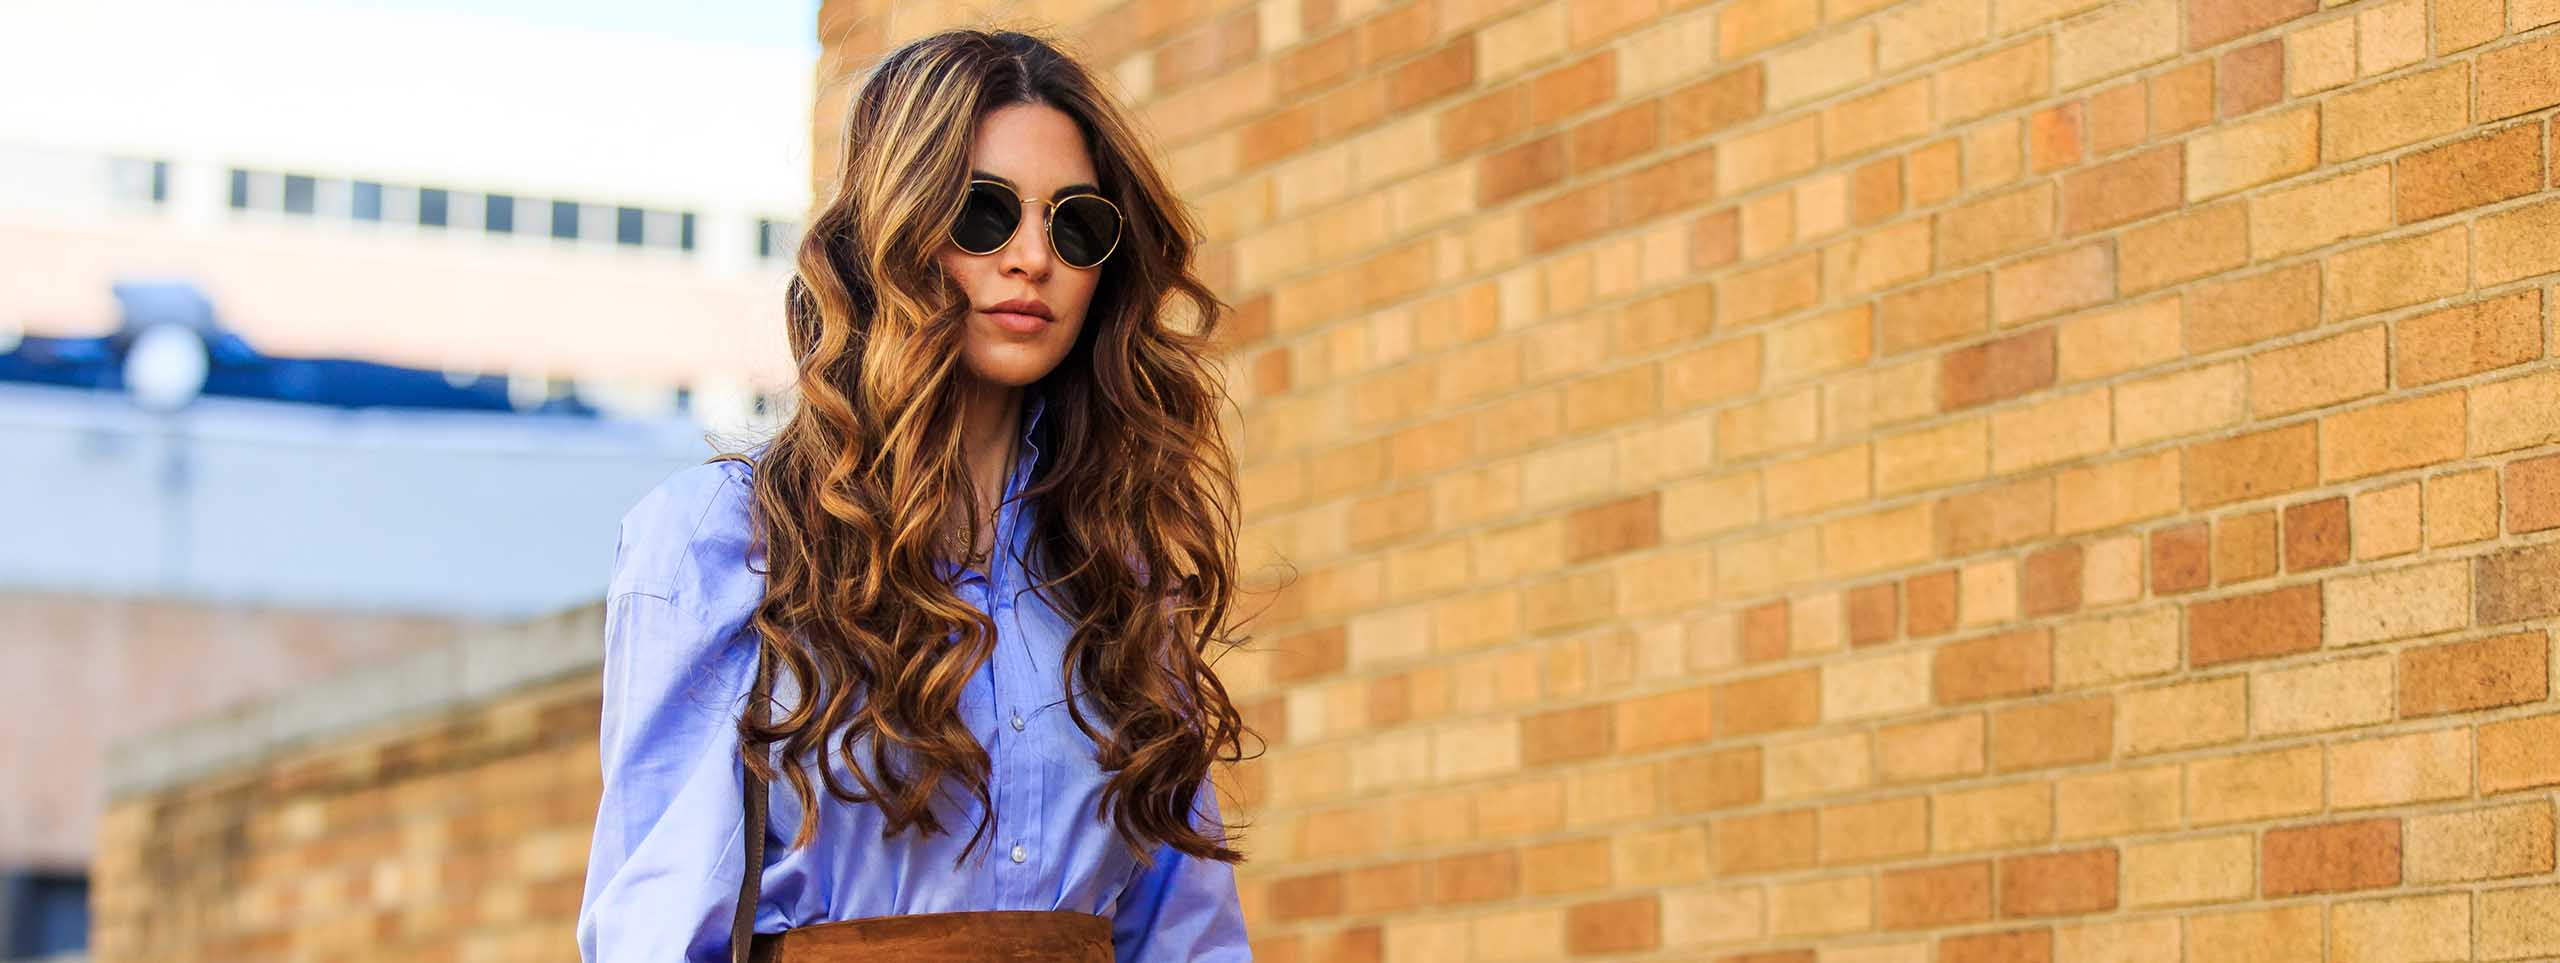 Undone Wavy Hairstyles: Feminine And Casual